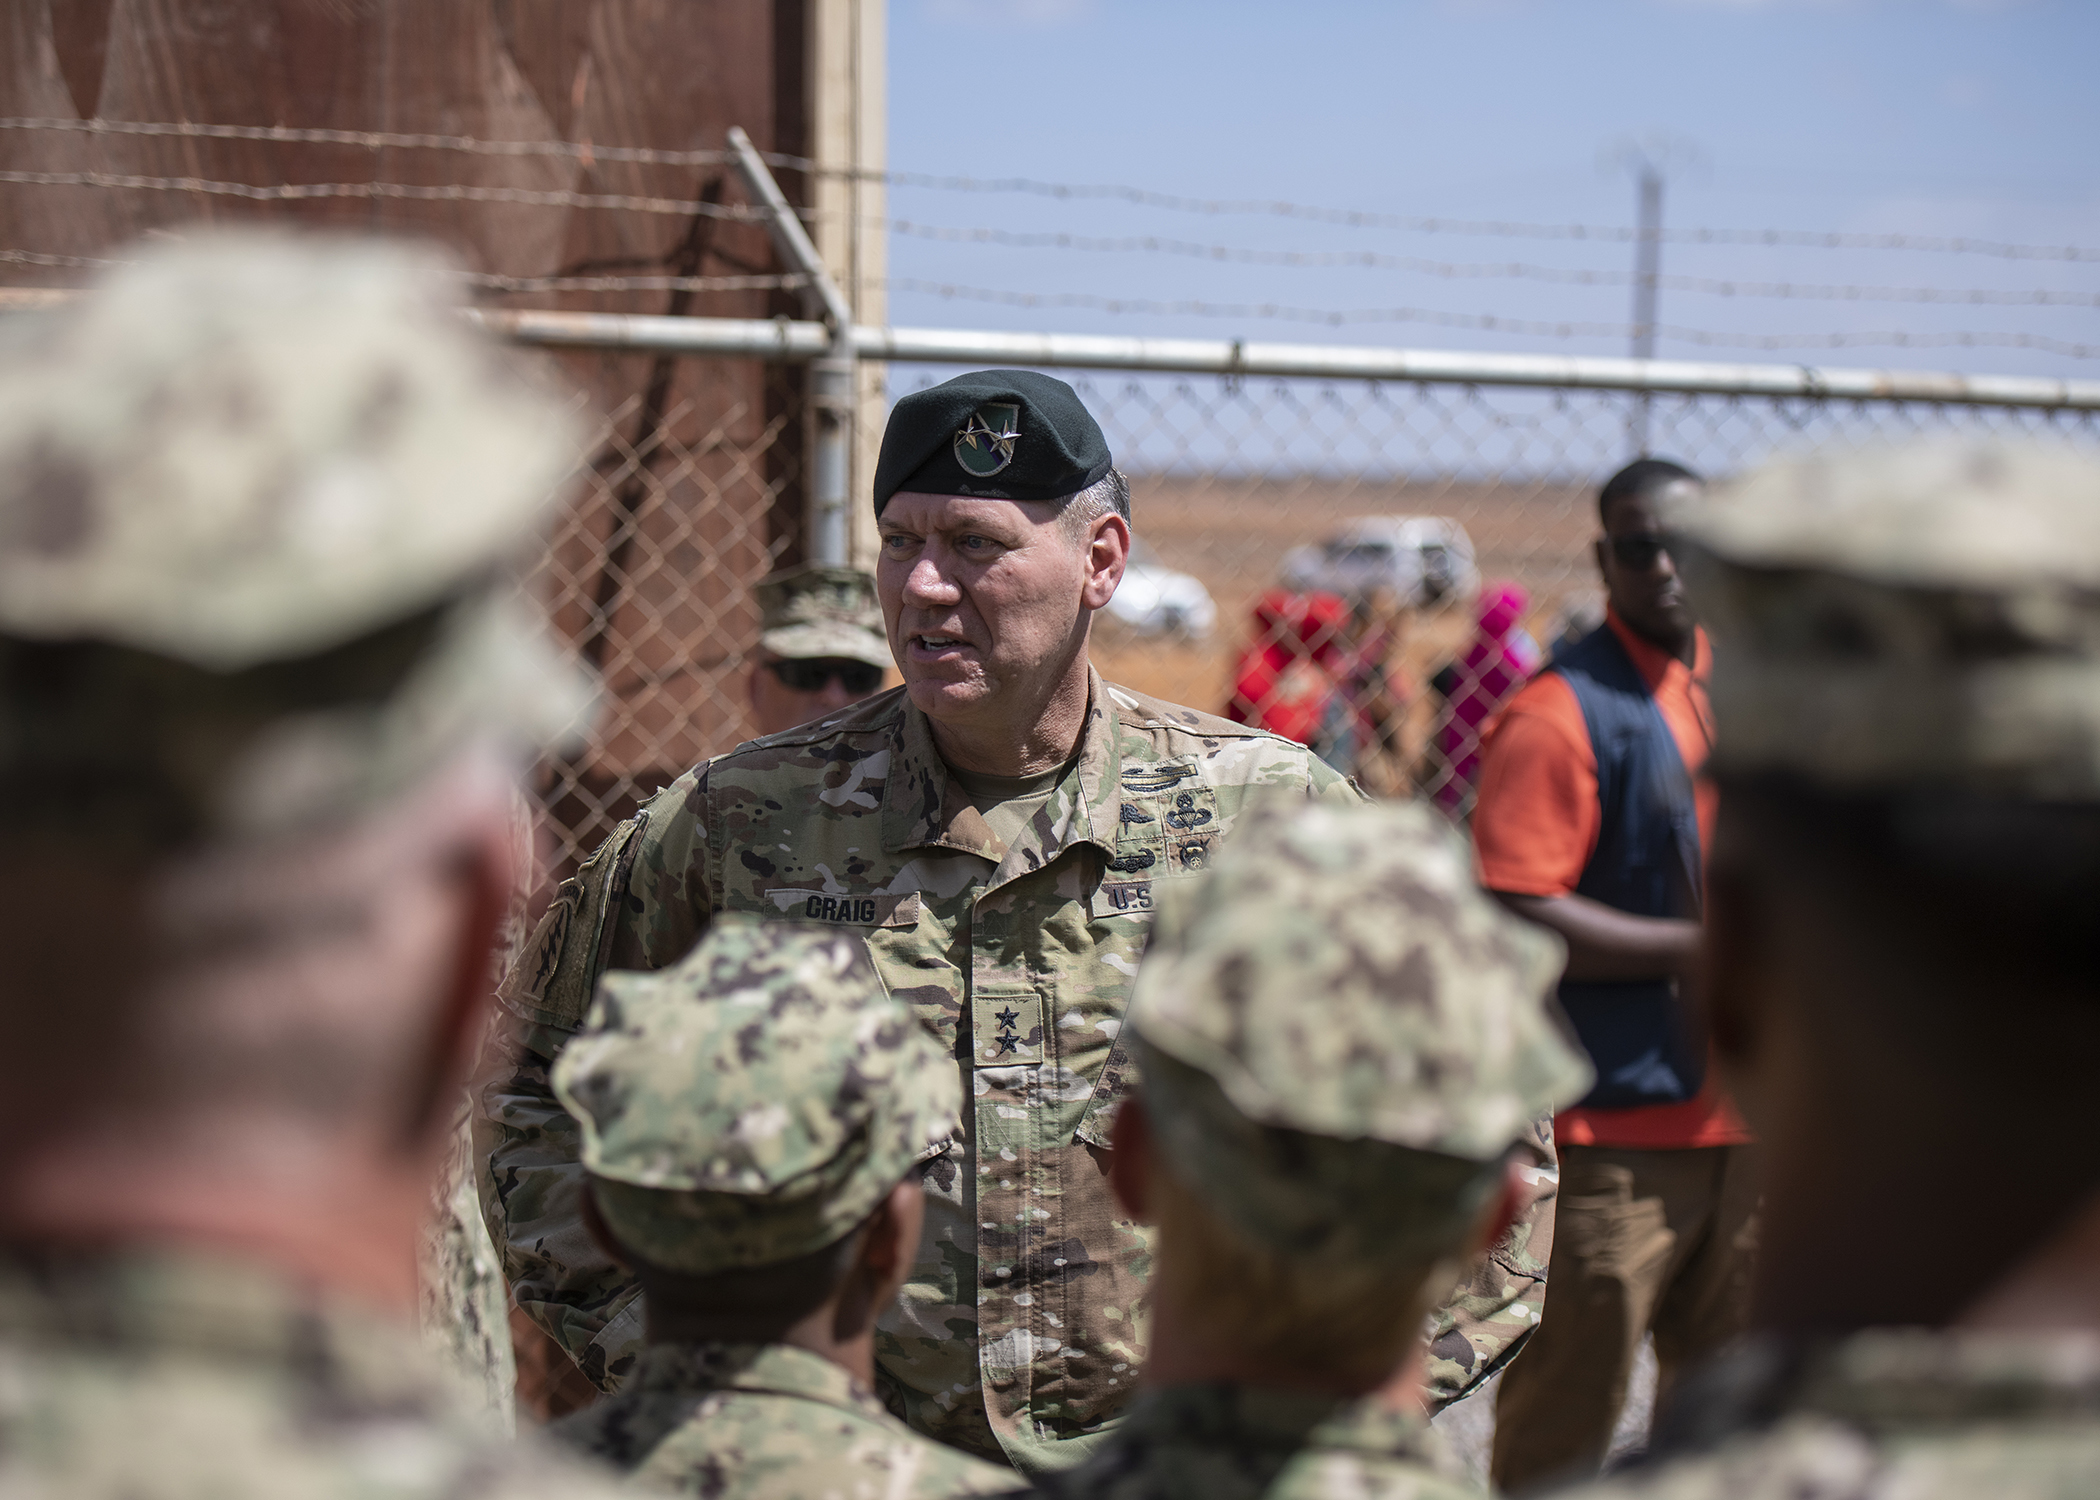 U.S. Army Maj. Gen. James D. Craig, commanding general, Combined Joint Task Force-Horn of Africa (CJTF-HOA), speaks to U.S. Navy Seabees from Naval Mobile Construction Battalion 1, assigned to CJTF-HOA, during the Ali Oune Medical Clinic ribbon cutting ceremony in Ali Oune, Djibouti, Jan. 31, 2019. The clinic, which the Seabees have been working to complete for five months, is intended to enhance the Ministry of Health for Djibouti's ability to provide basic medical, birth and after care to the Ali Oune village and its more than 1,000 residents and rural neighbors. (U.S. Air Force photo by Tech. Sgt. Shawn Nickel)